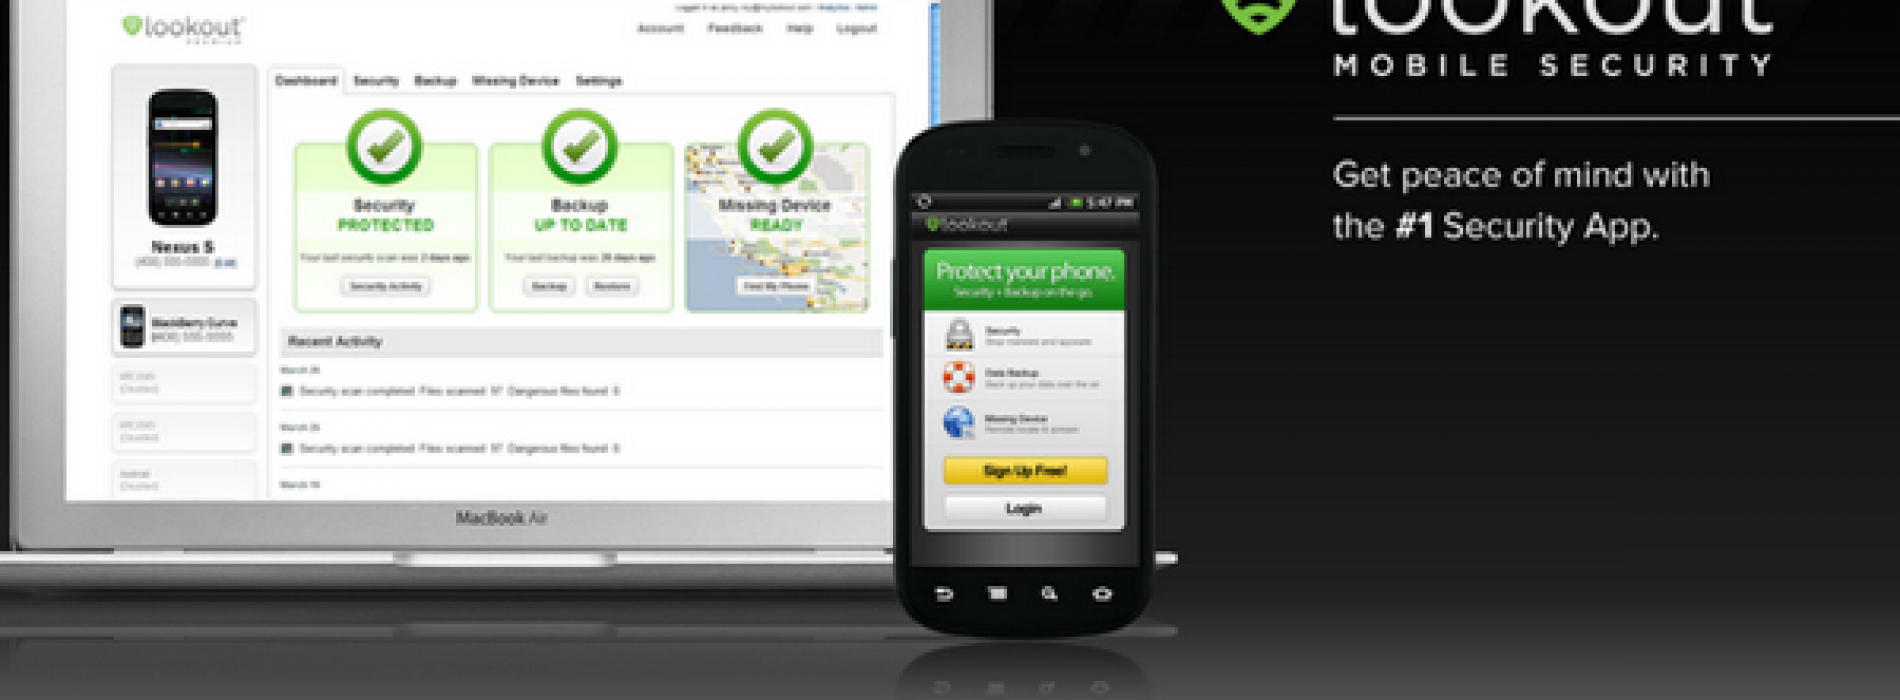 22 apps kicked from Android Market over premium SMS toll fraud